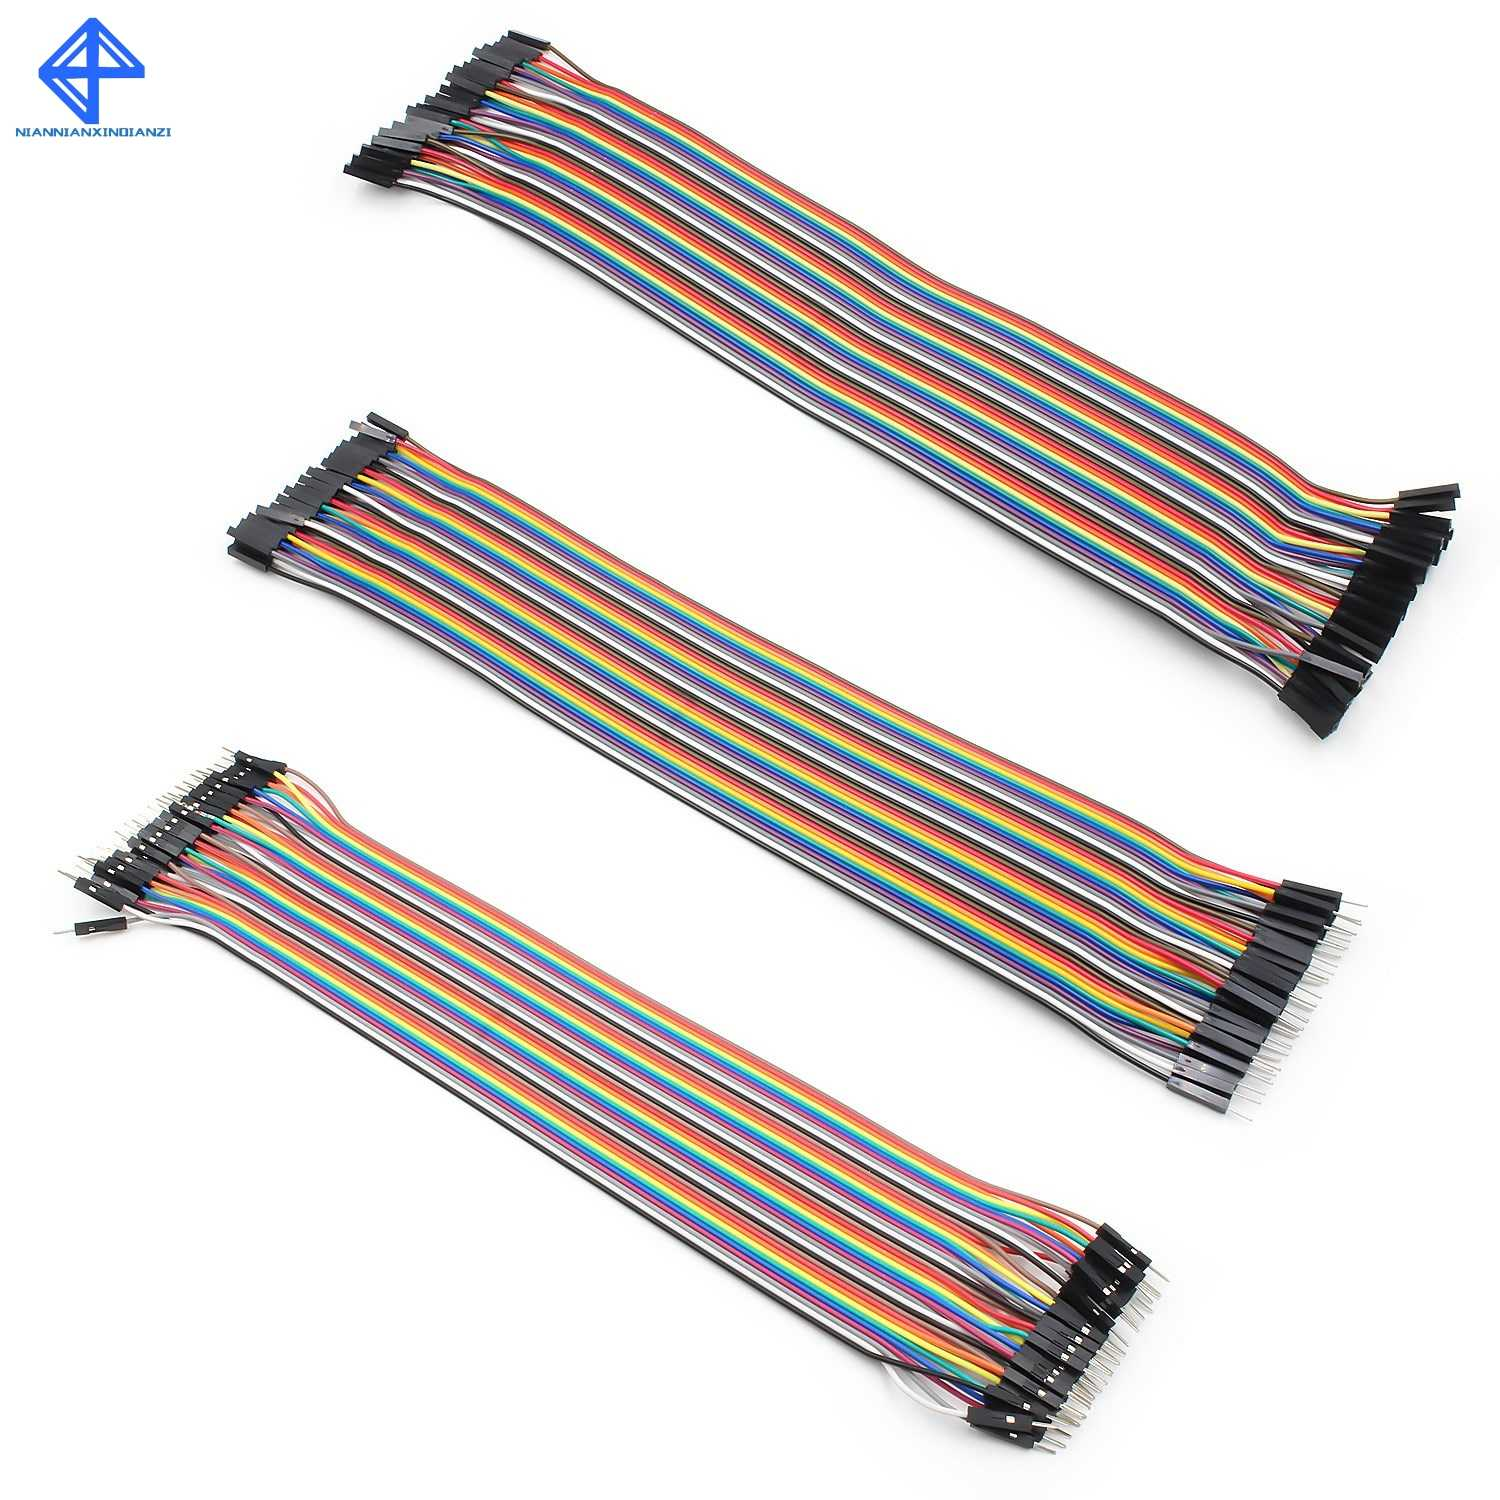 50pcs 3 Pin 20cm 2.54mm Dupont Jumper Cable Wires For Arduino Female T Female